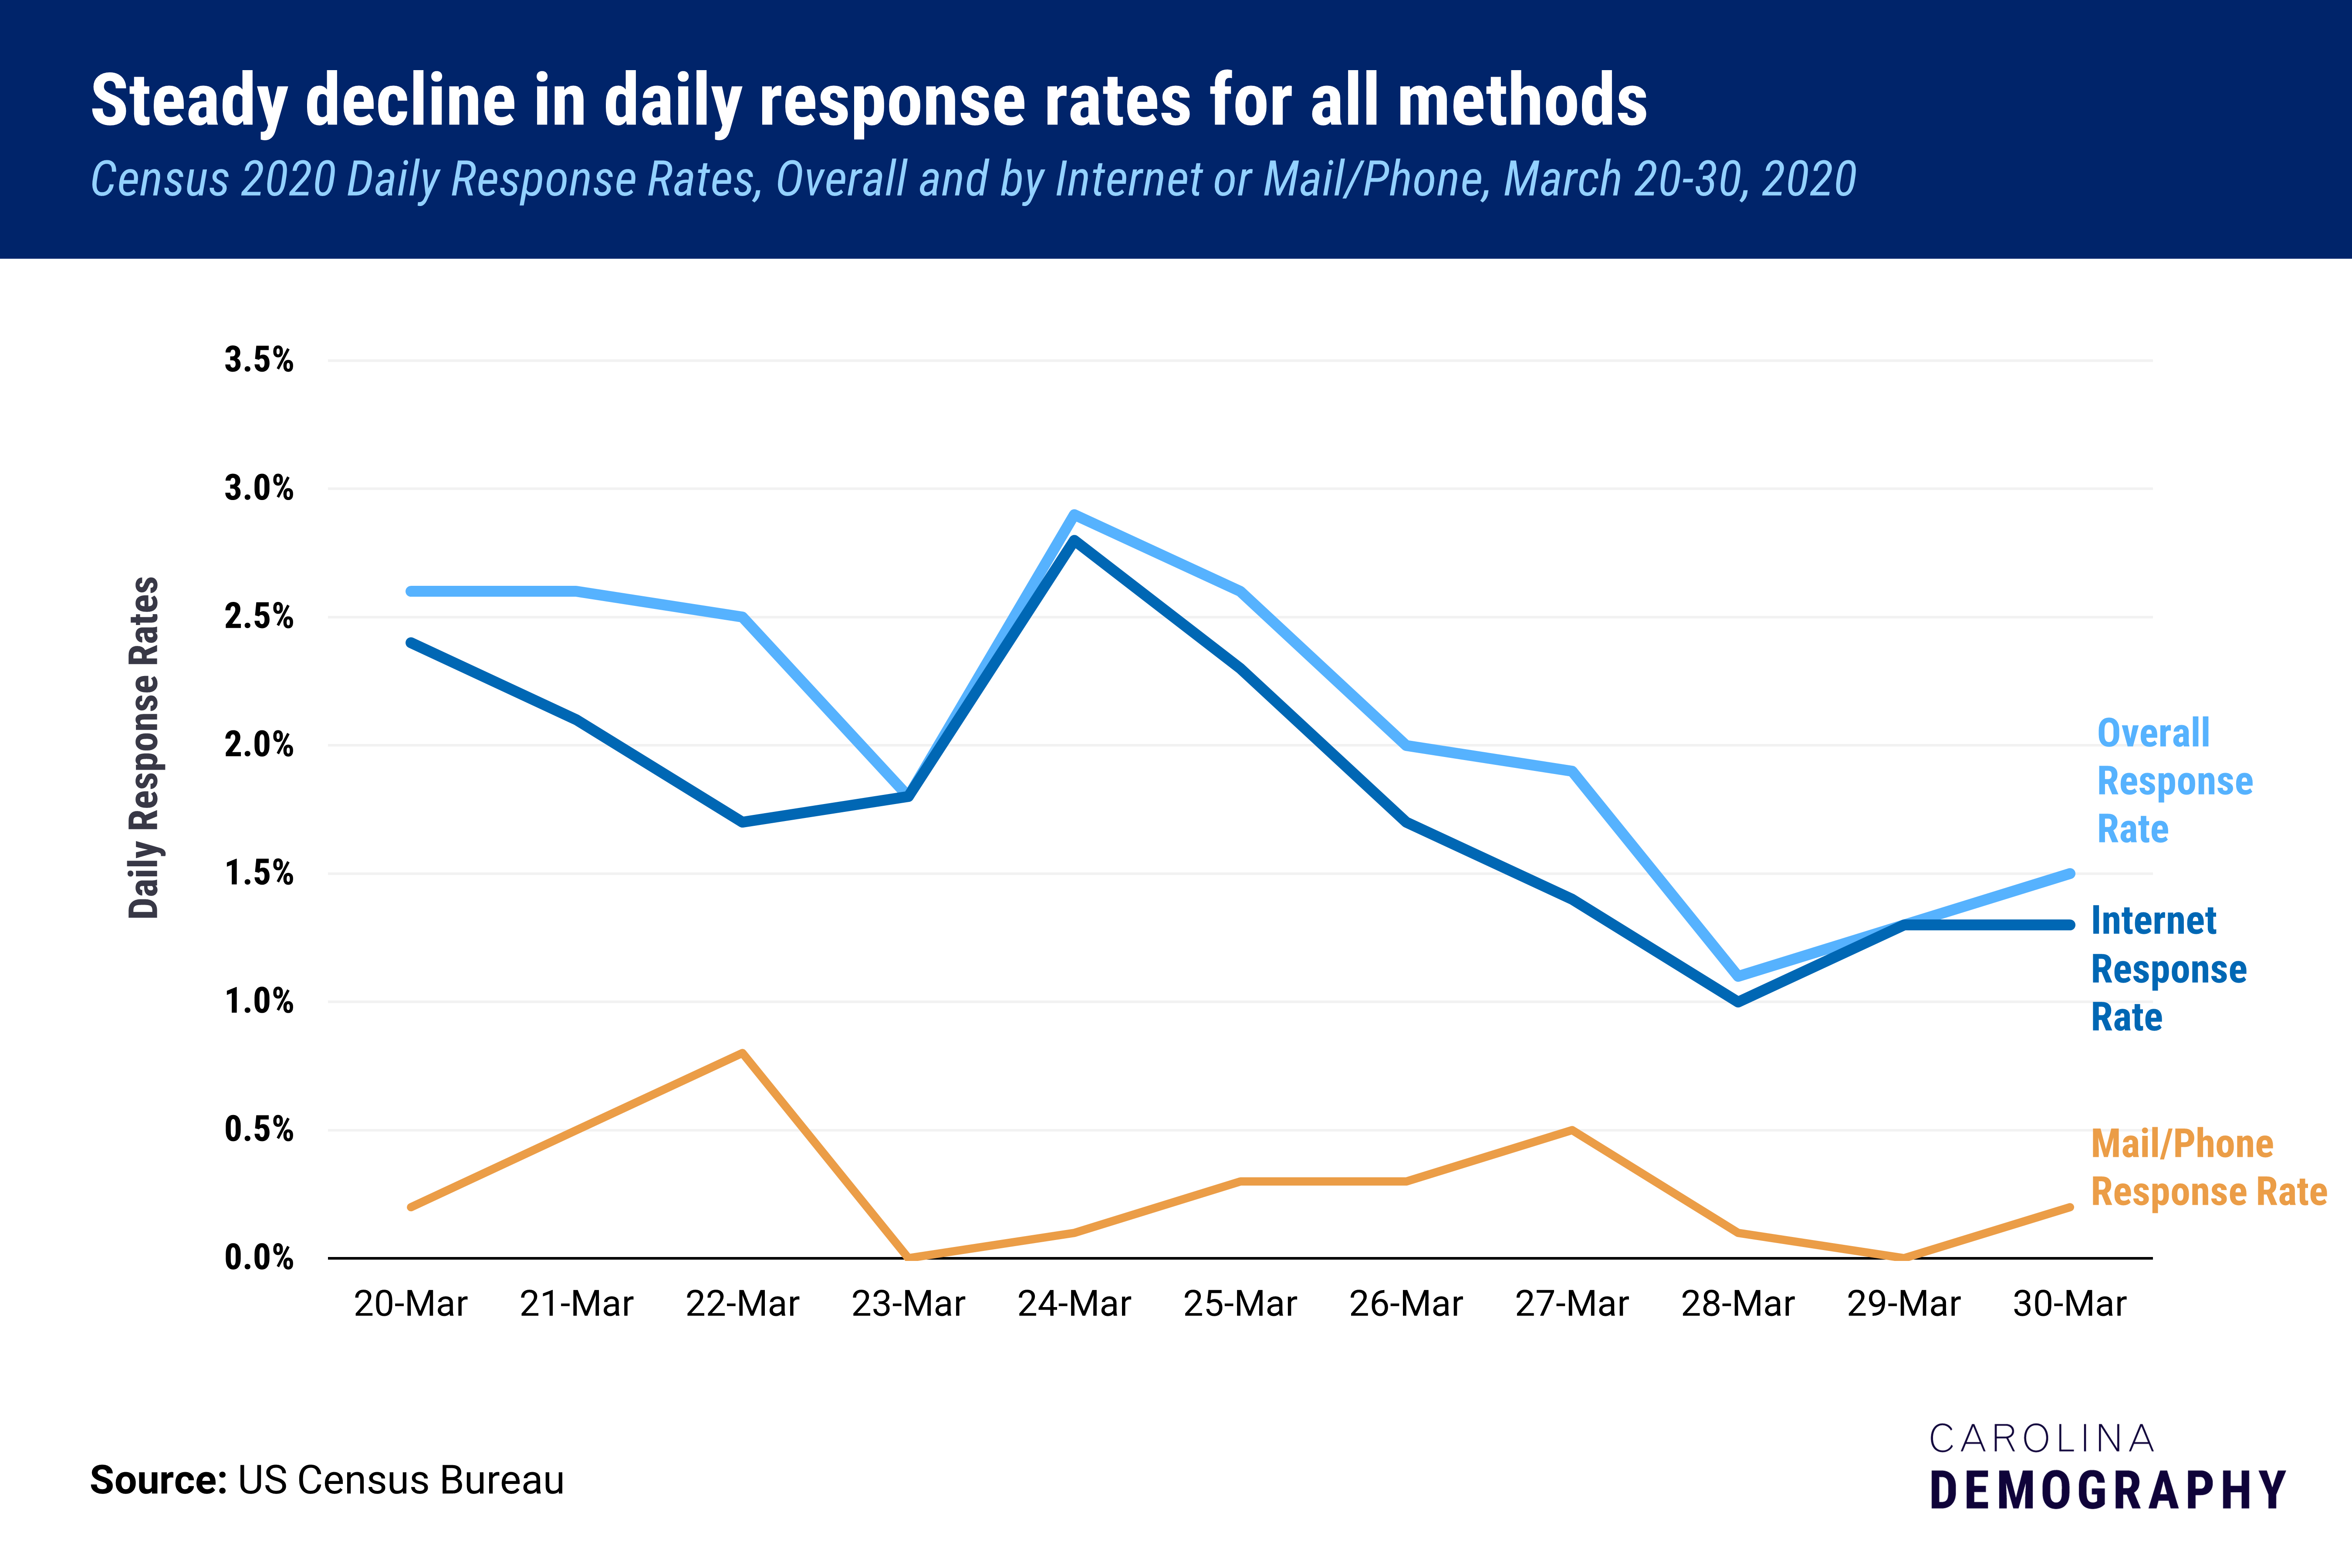 graph showing a steady decline in daily census response rates in North Carolina through march 30th, 2020